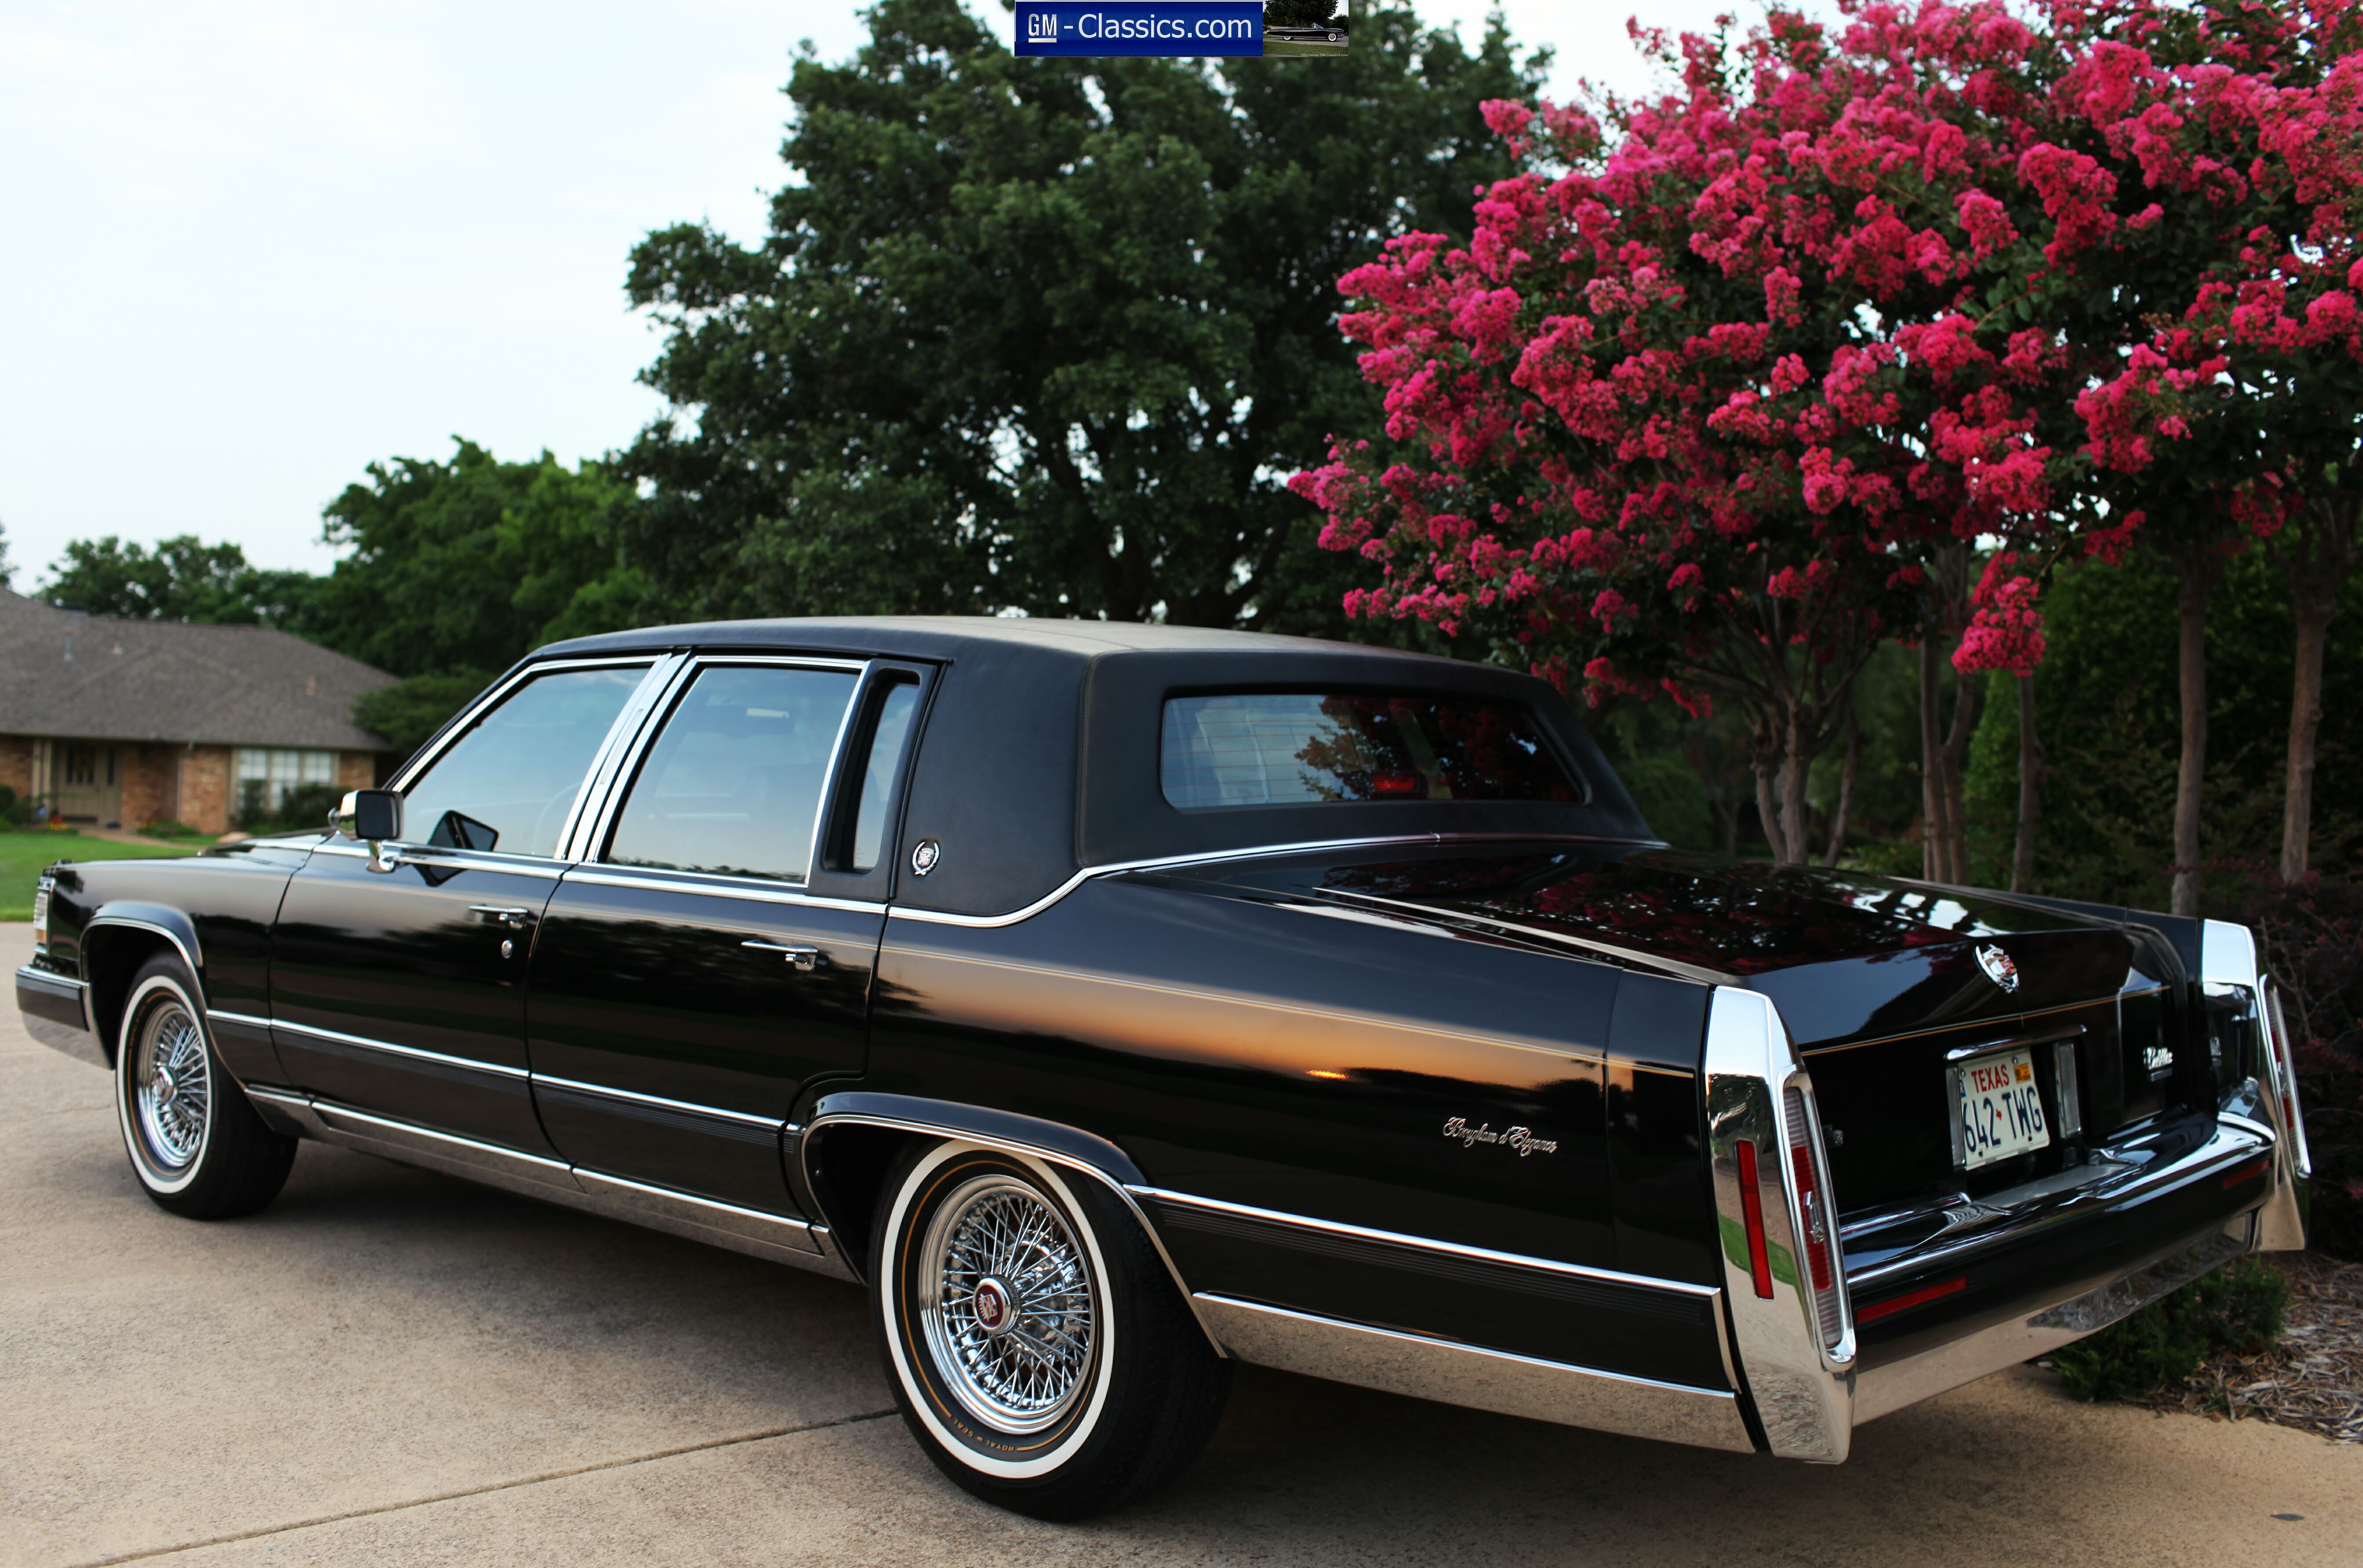 1990 cadillac brougham brougham deelegance ebay. Cars Review. Best American Auto & Cars Review